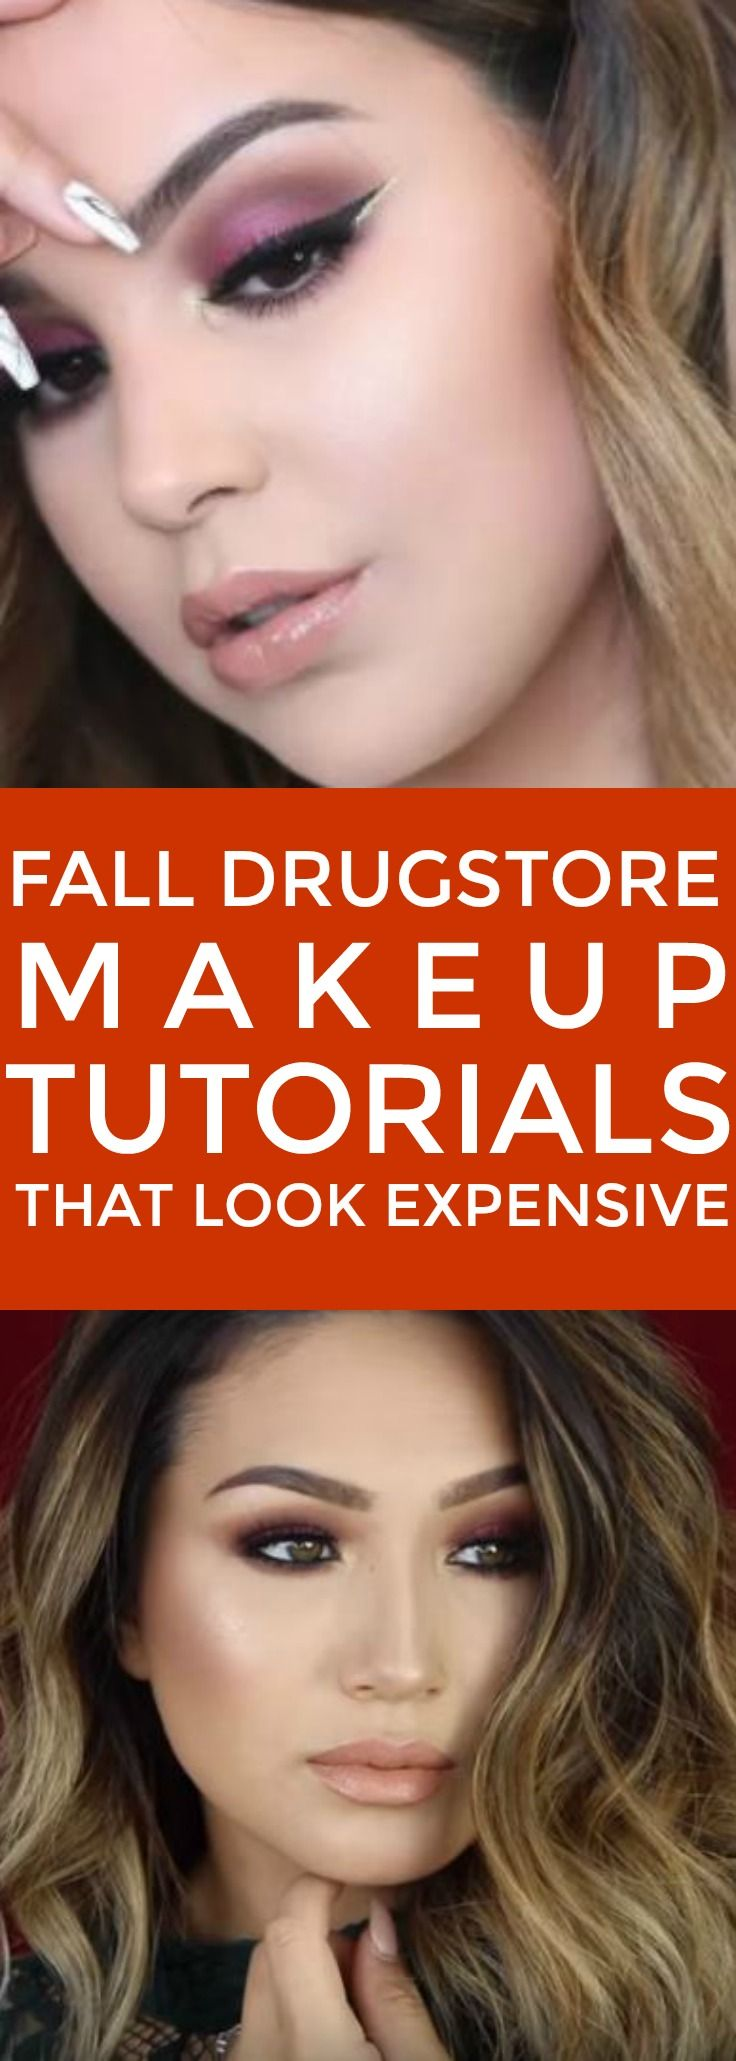 Fall Drugstore Makeup Tutorials That Look High End